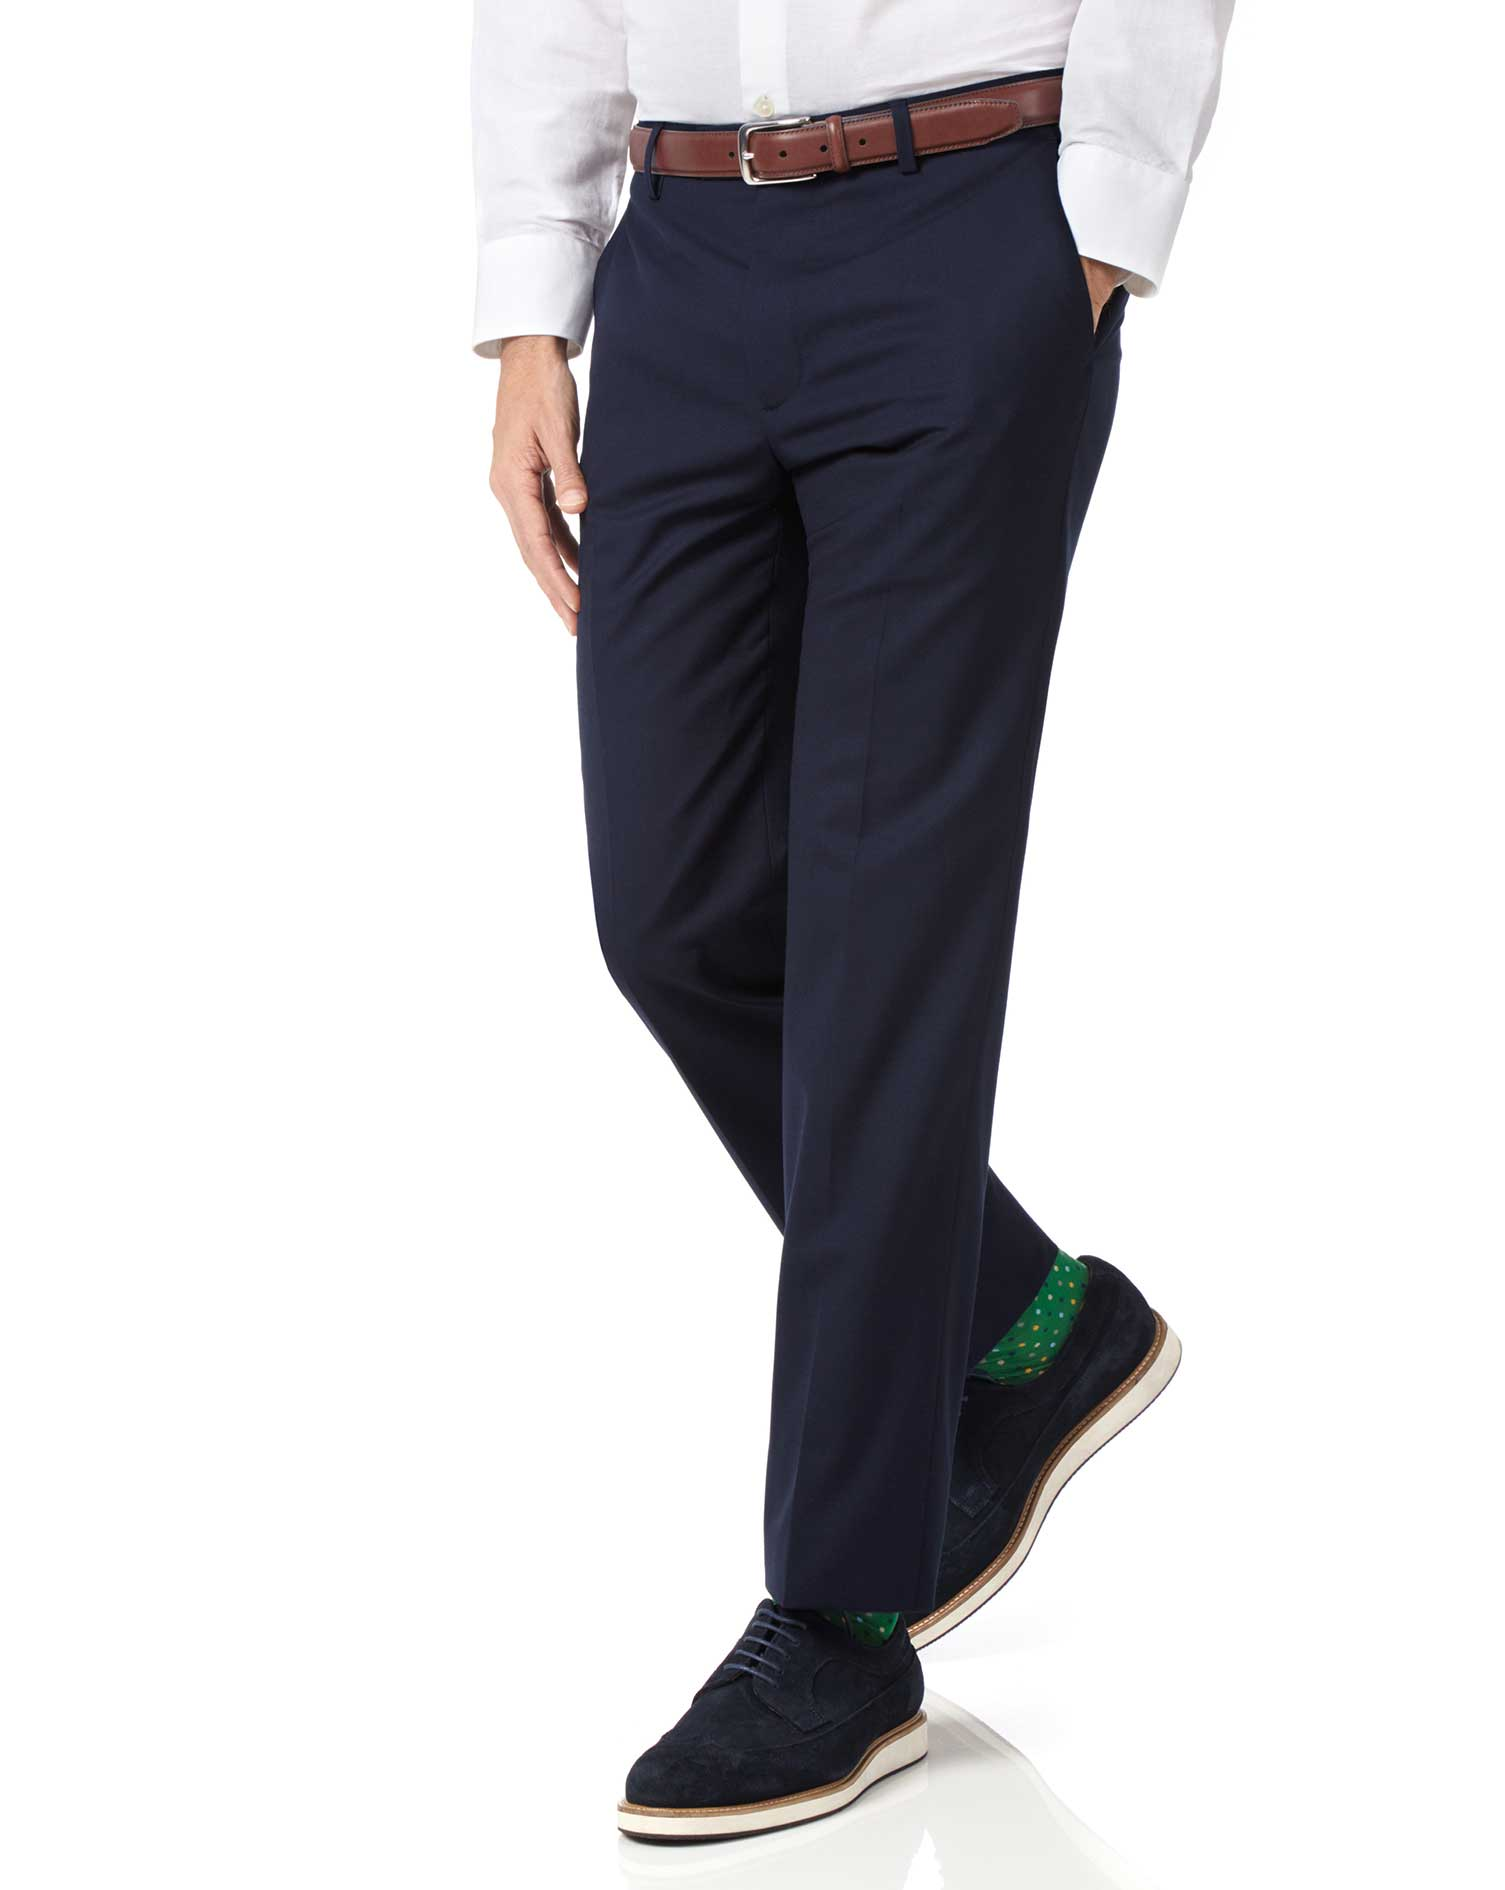 Navy Slim Fit Lightweight Wool Trousers Size W40 L32 by Charles Tyrwhitt